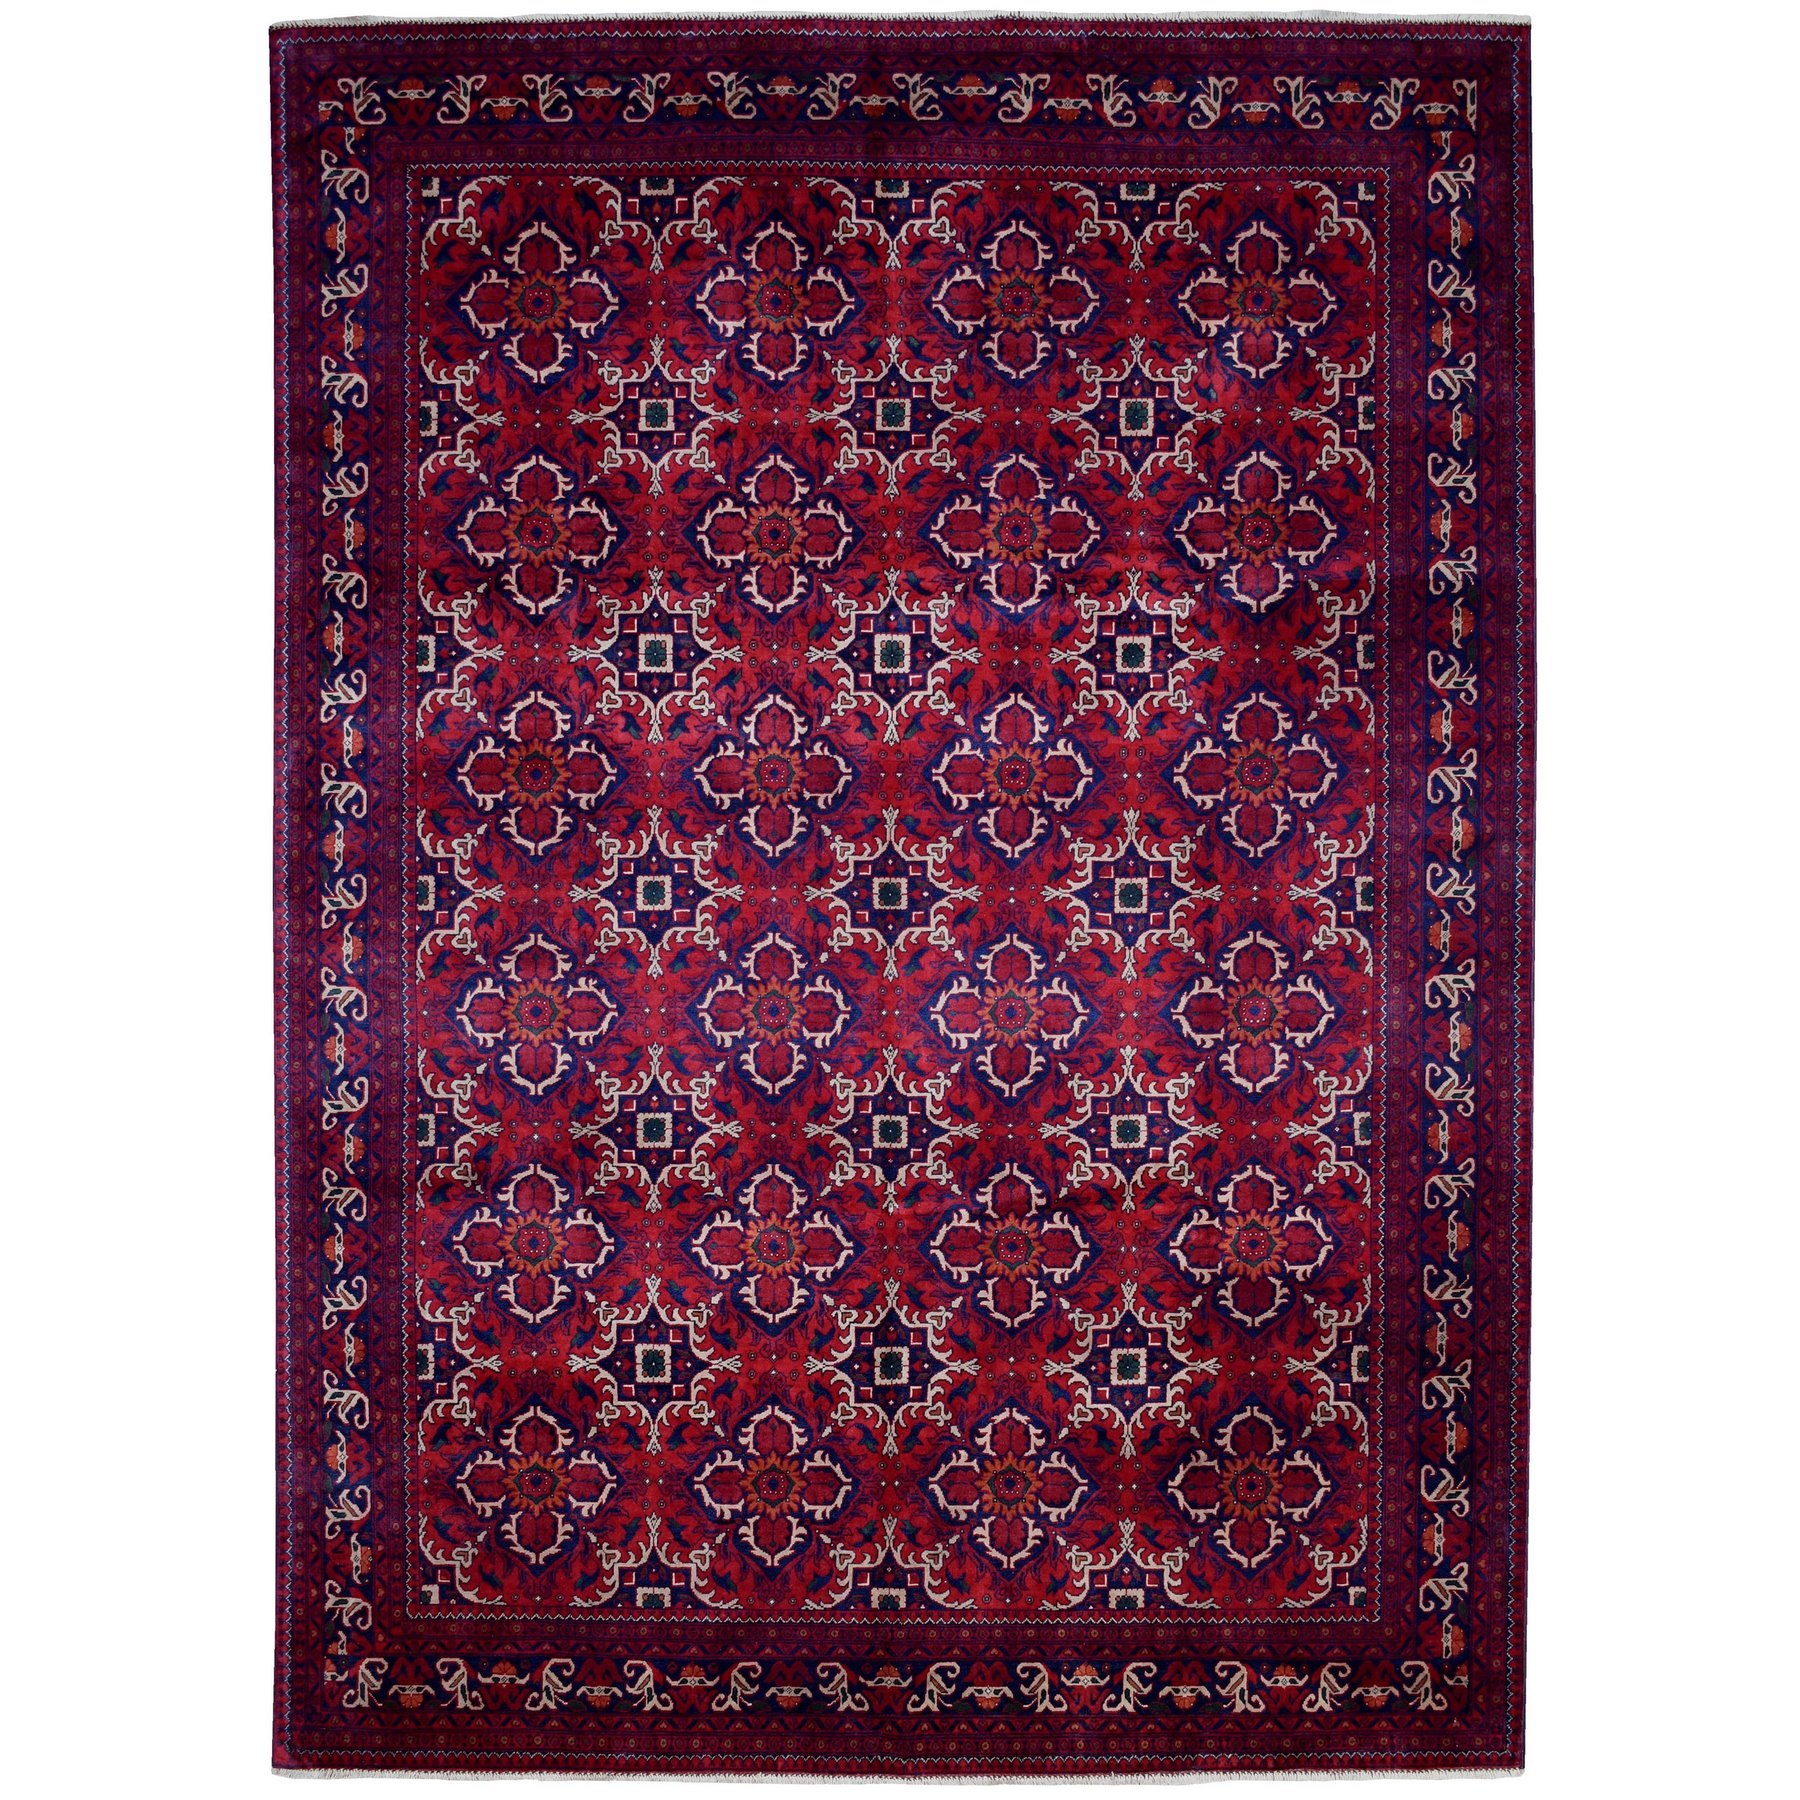 Nomadic And Village Collection Hand Knotted Red Rug No: 1135402